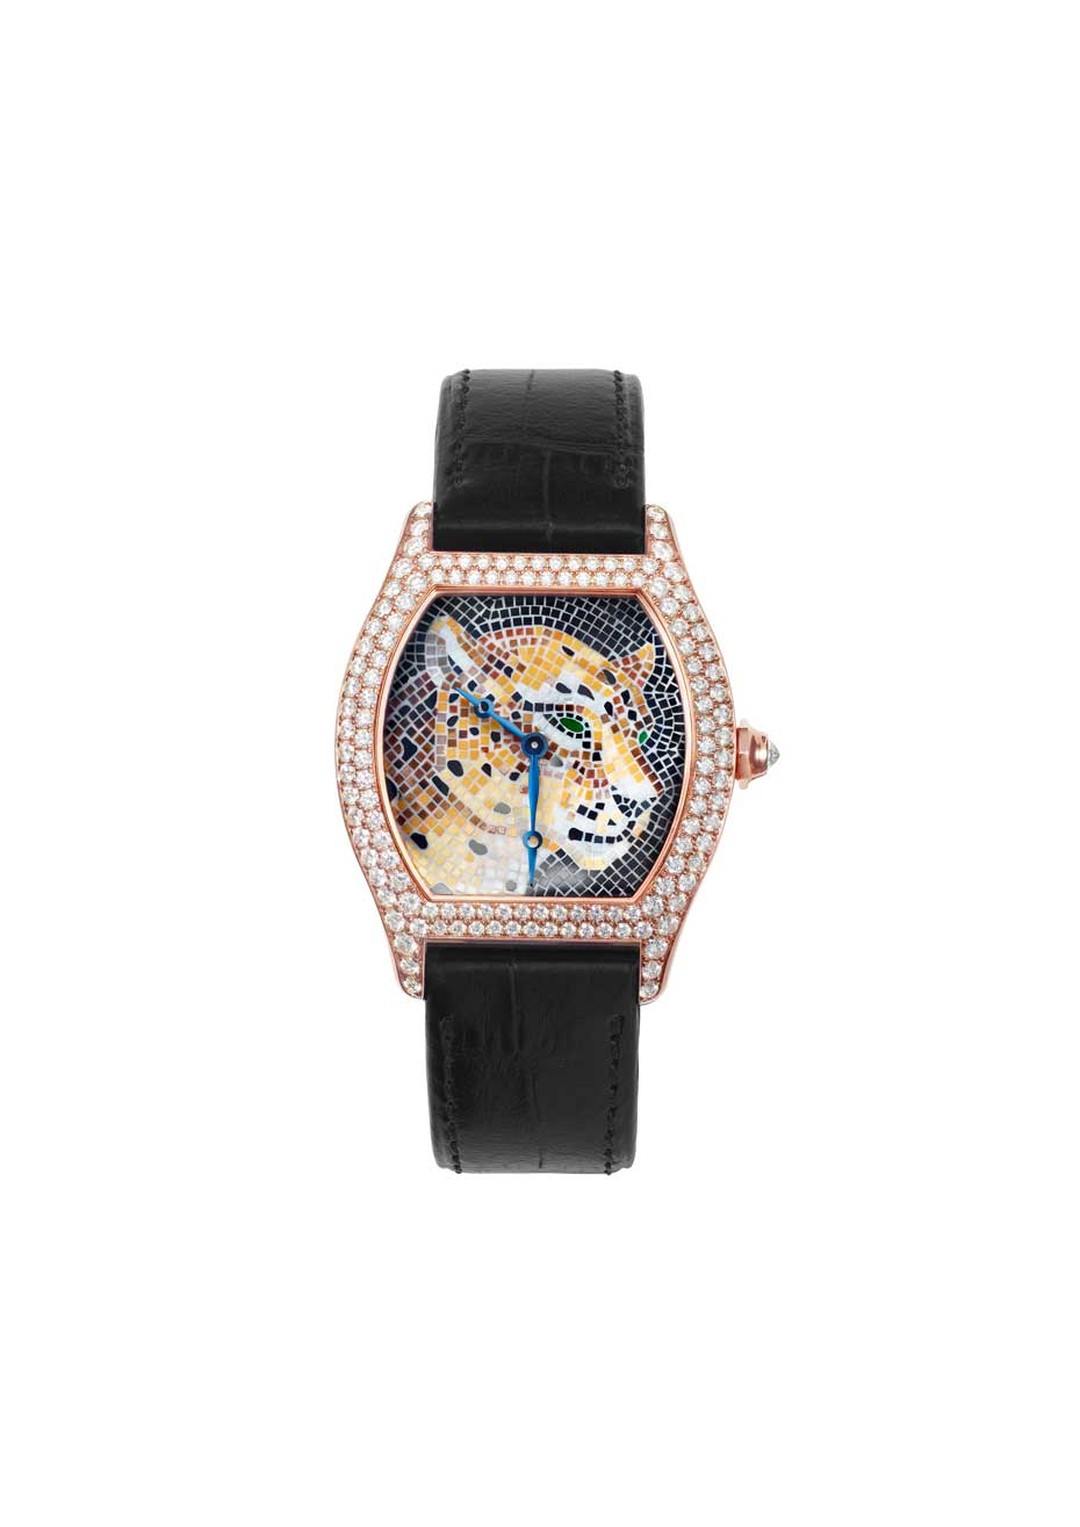 Cartier Panther Stone Mosaic motif set into a Tortue XL watch case. This limited edition of 30 watches highlights the craft of mosaics, and recreates the head of Cartier's iconic panther in mosaic tiles, with onyx mosaic tiles for the nose and spots.